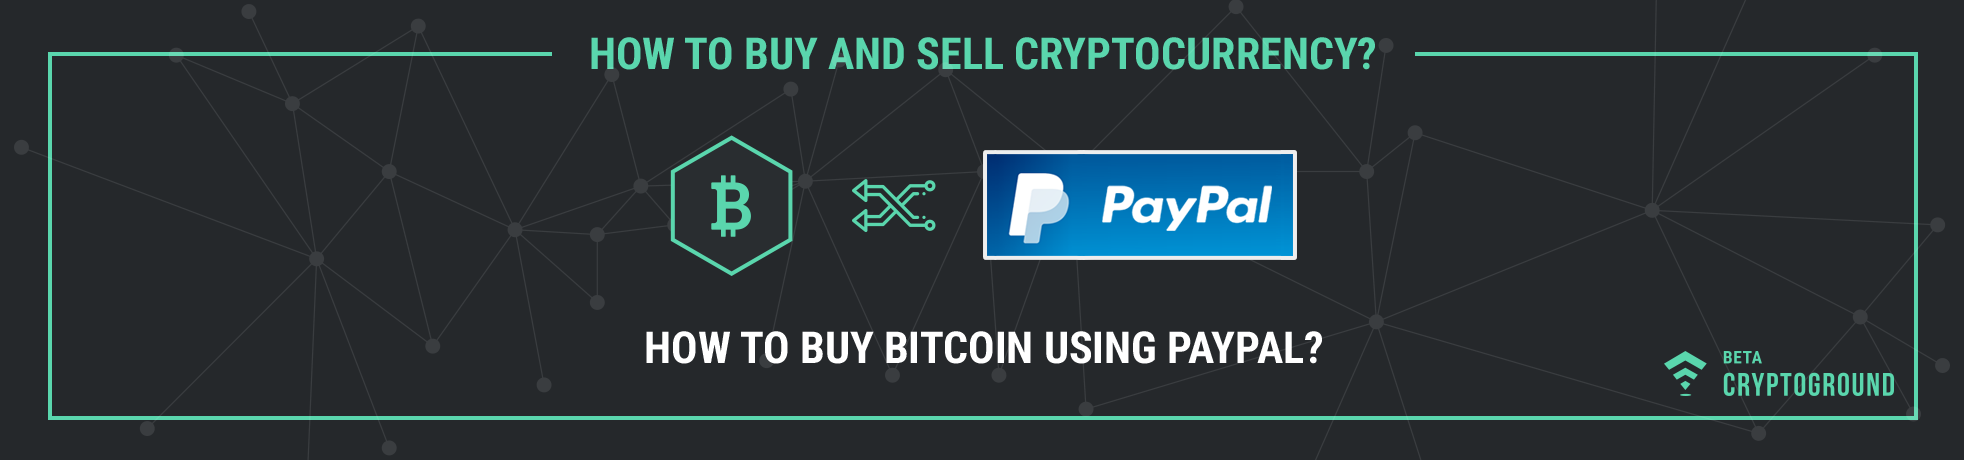 How to Buy Bitcoin Using PayPal?